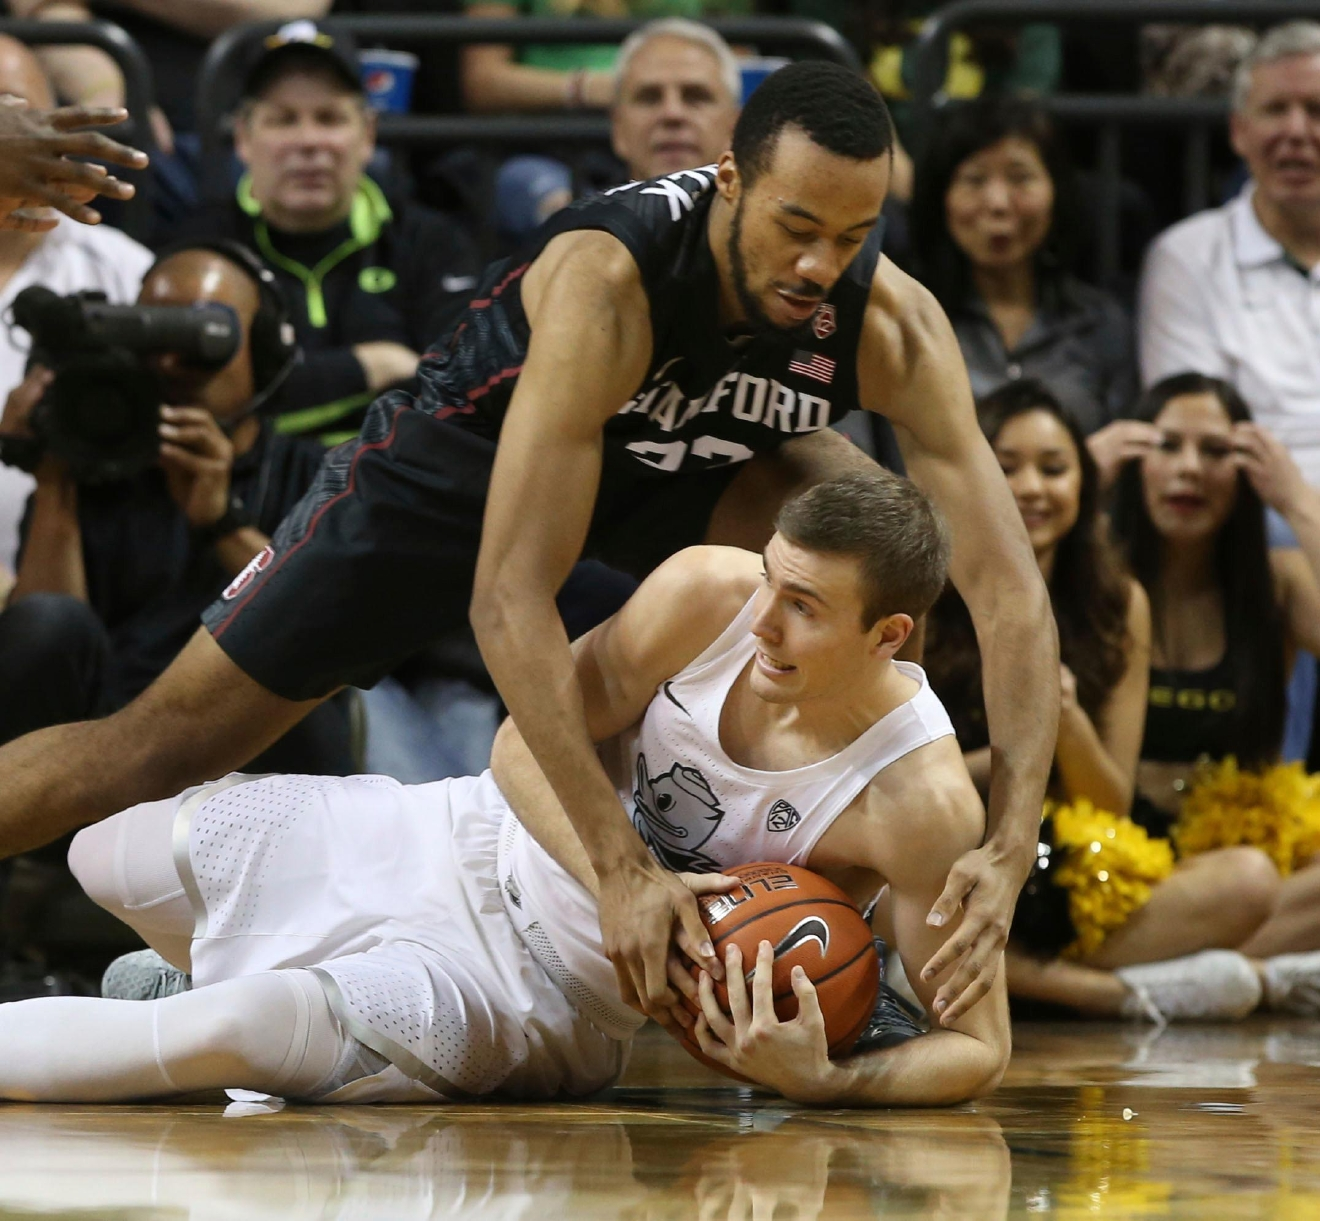 Stanford's Trevor Stanback, top, battles Oregon's Casey Benson for a loose ball during the first half of an NCAA college basketball game, Saturday, Jan. 21, 2017, in Eugene, Ore. (AP Photo/Chris Pietsch)